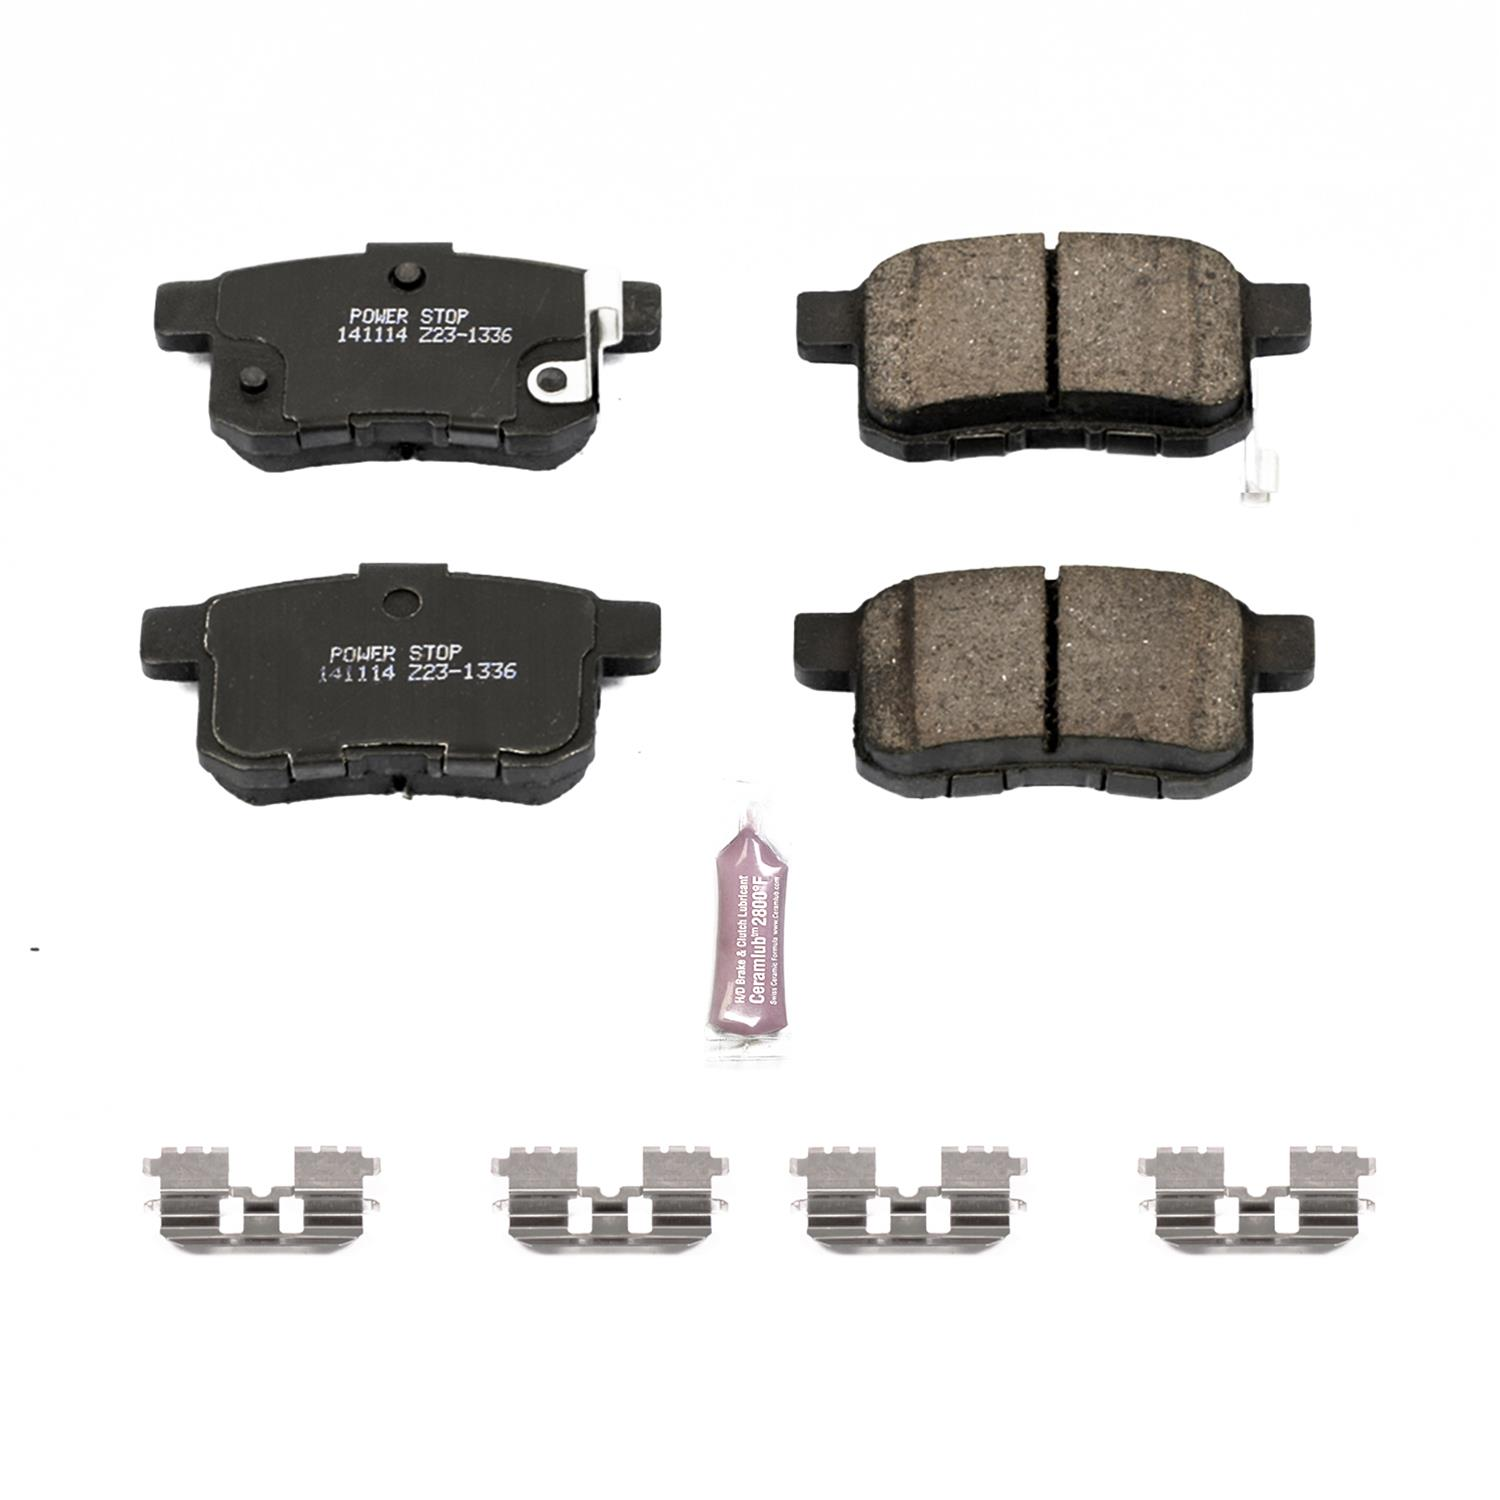 Power Stop Z23 Evolution Sport Carbon Fiber Infused Ceramic Brake Pads Z23- 1336 - Free Shipping on Orders Over $99 at Summit Racing